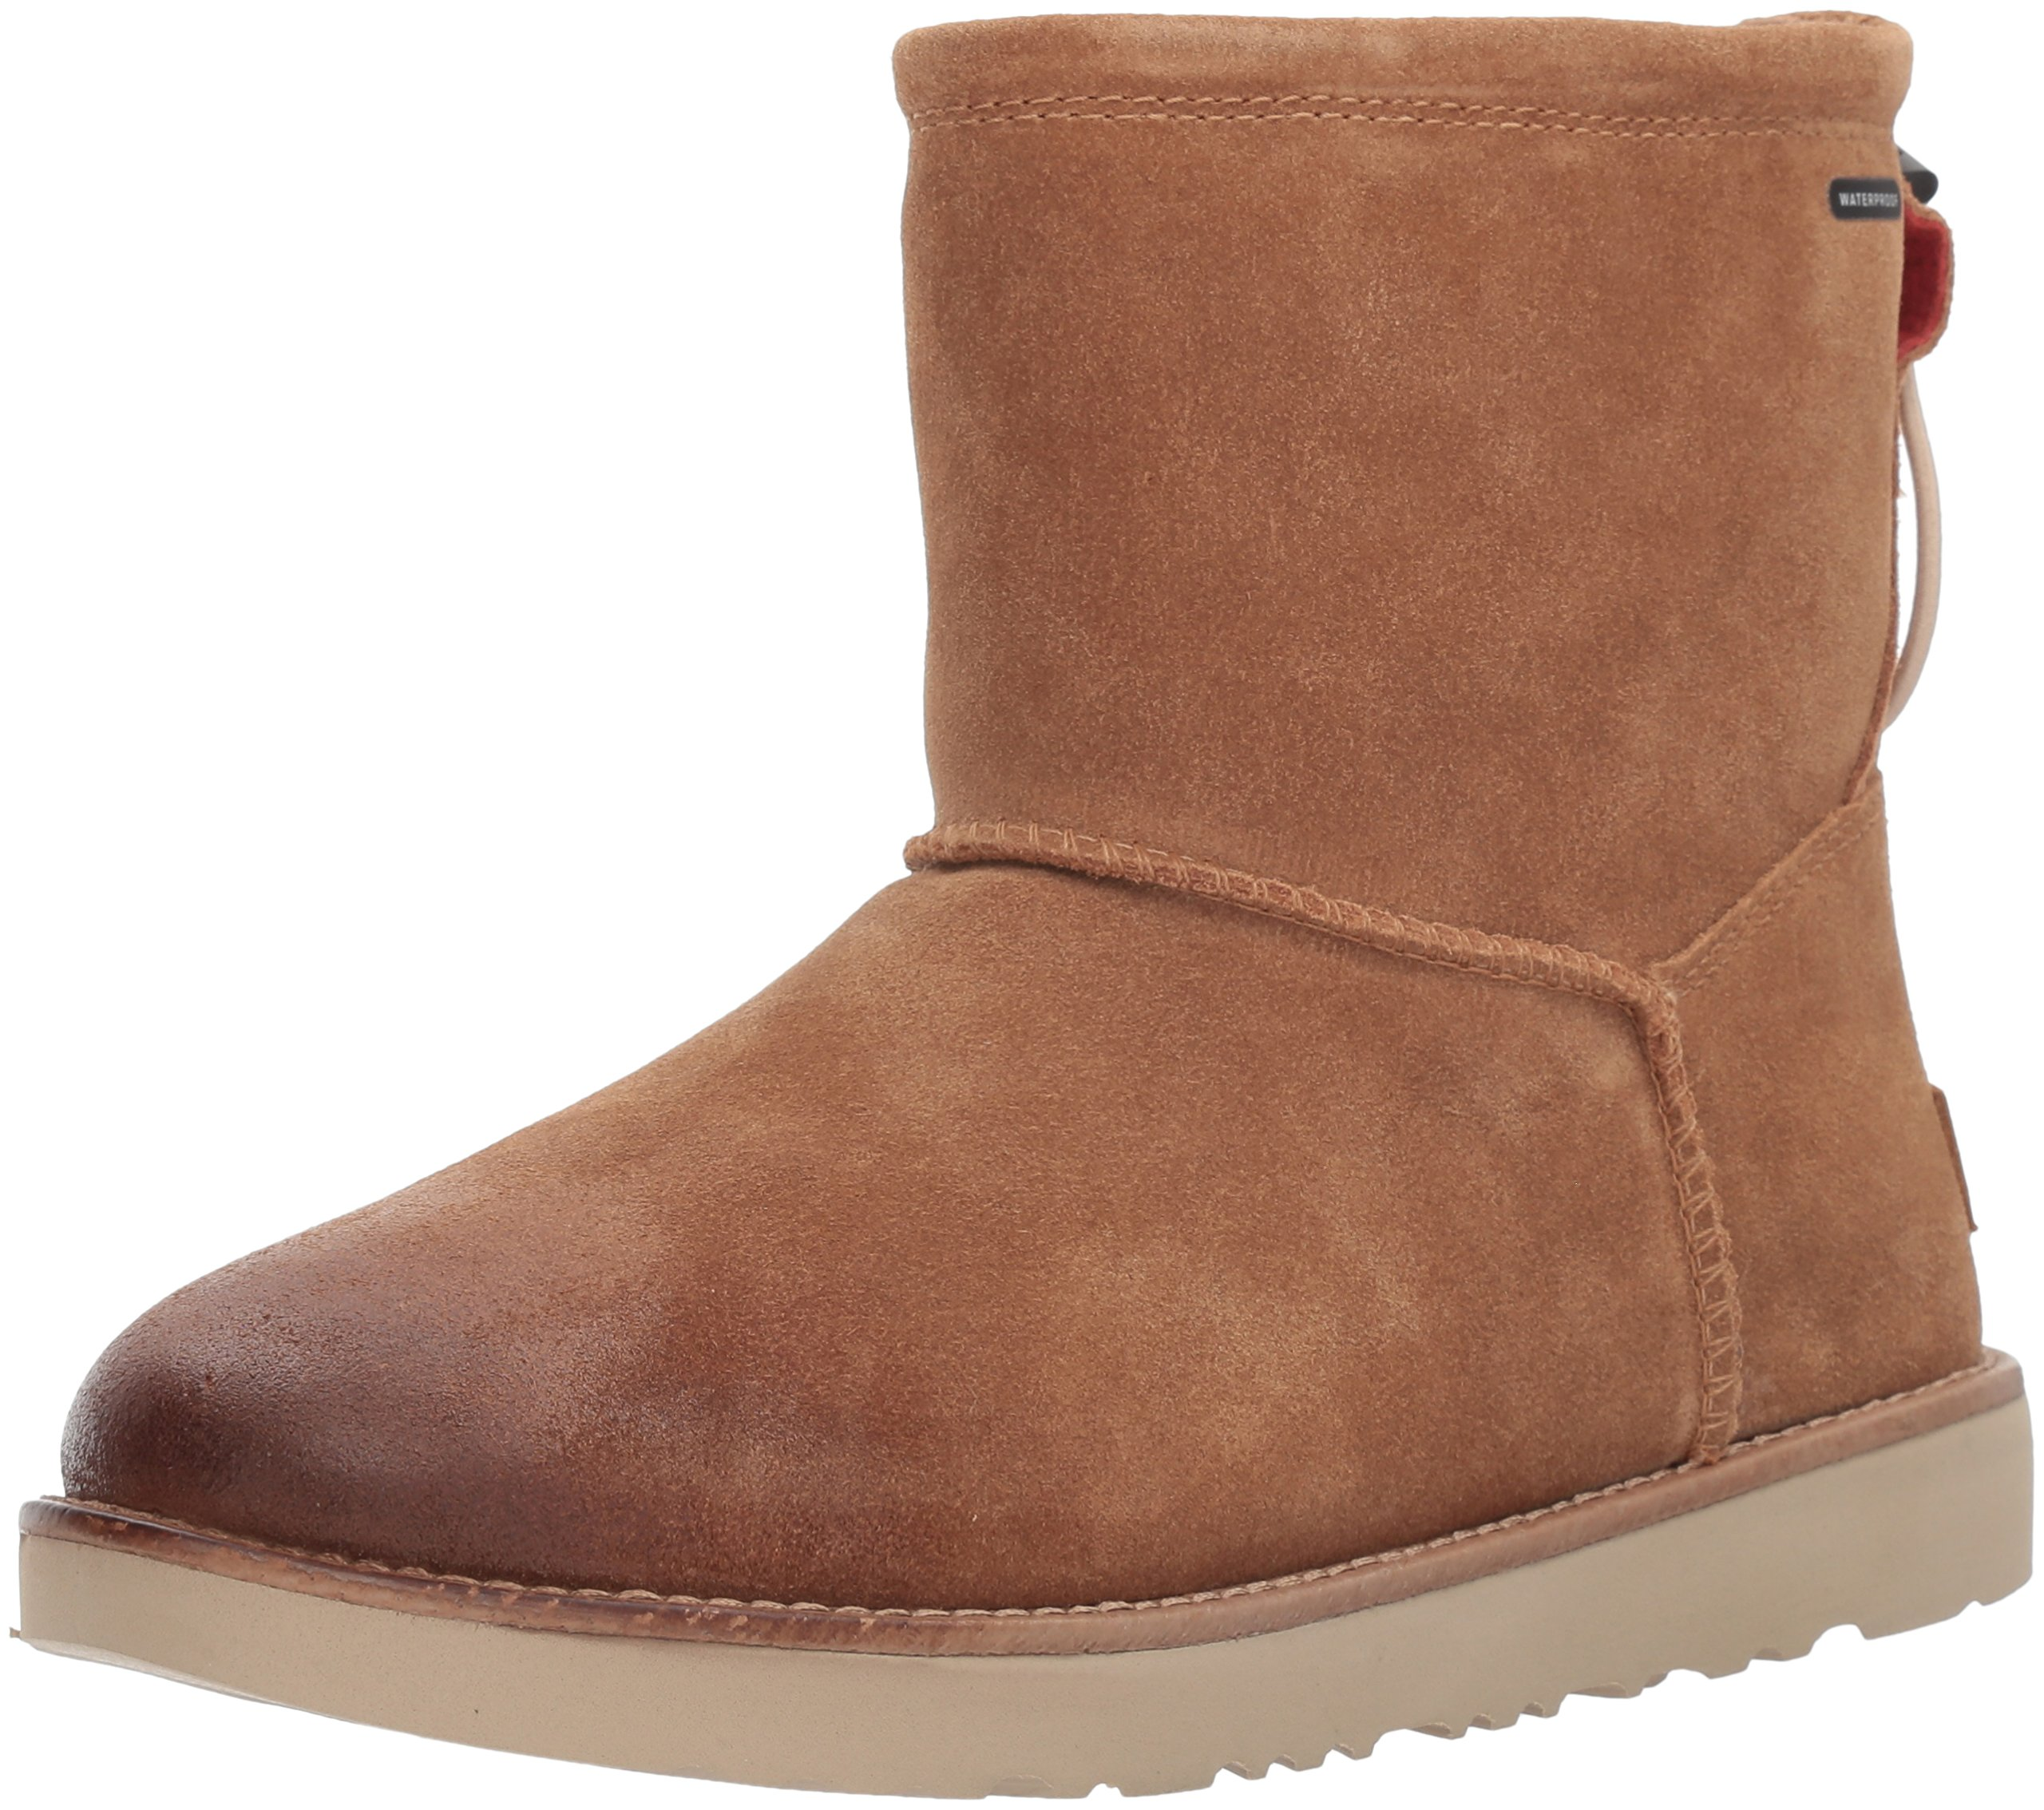 UGG Men's Classic Toggle Waterproof Winter Boot, Chestnut, 11 M US by UGG (Image #1)